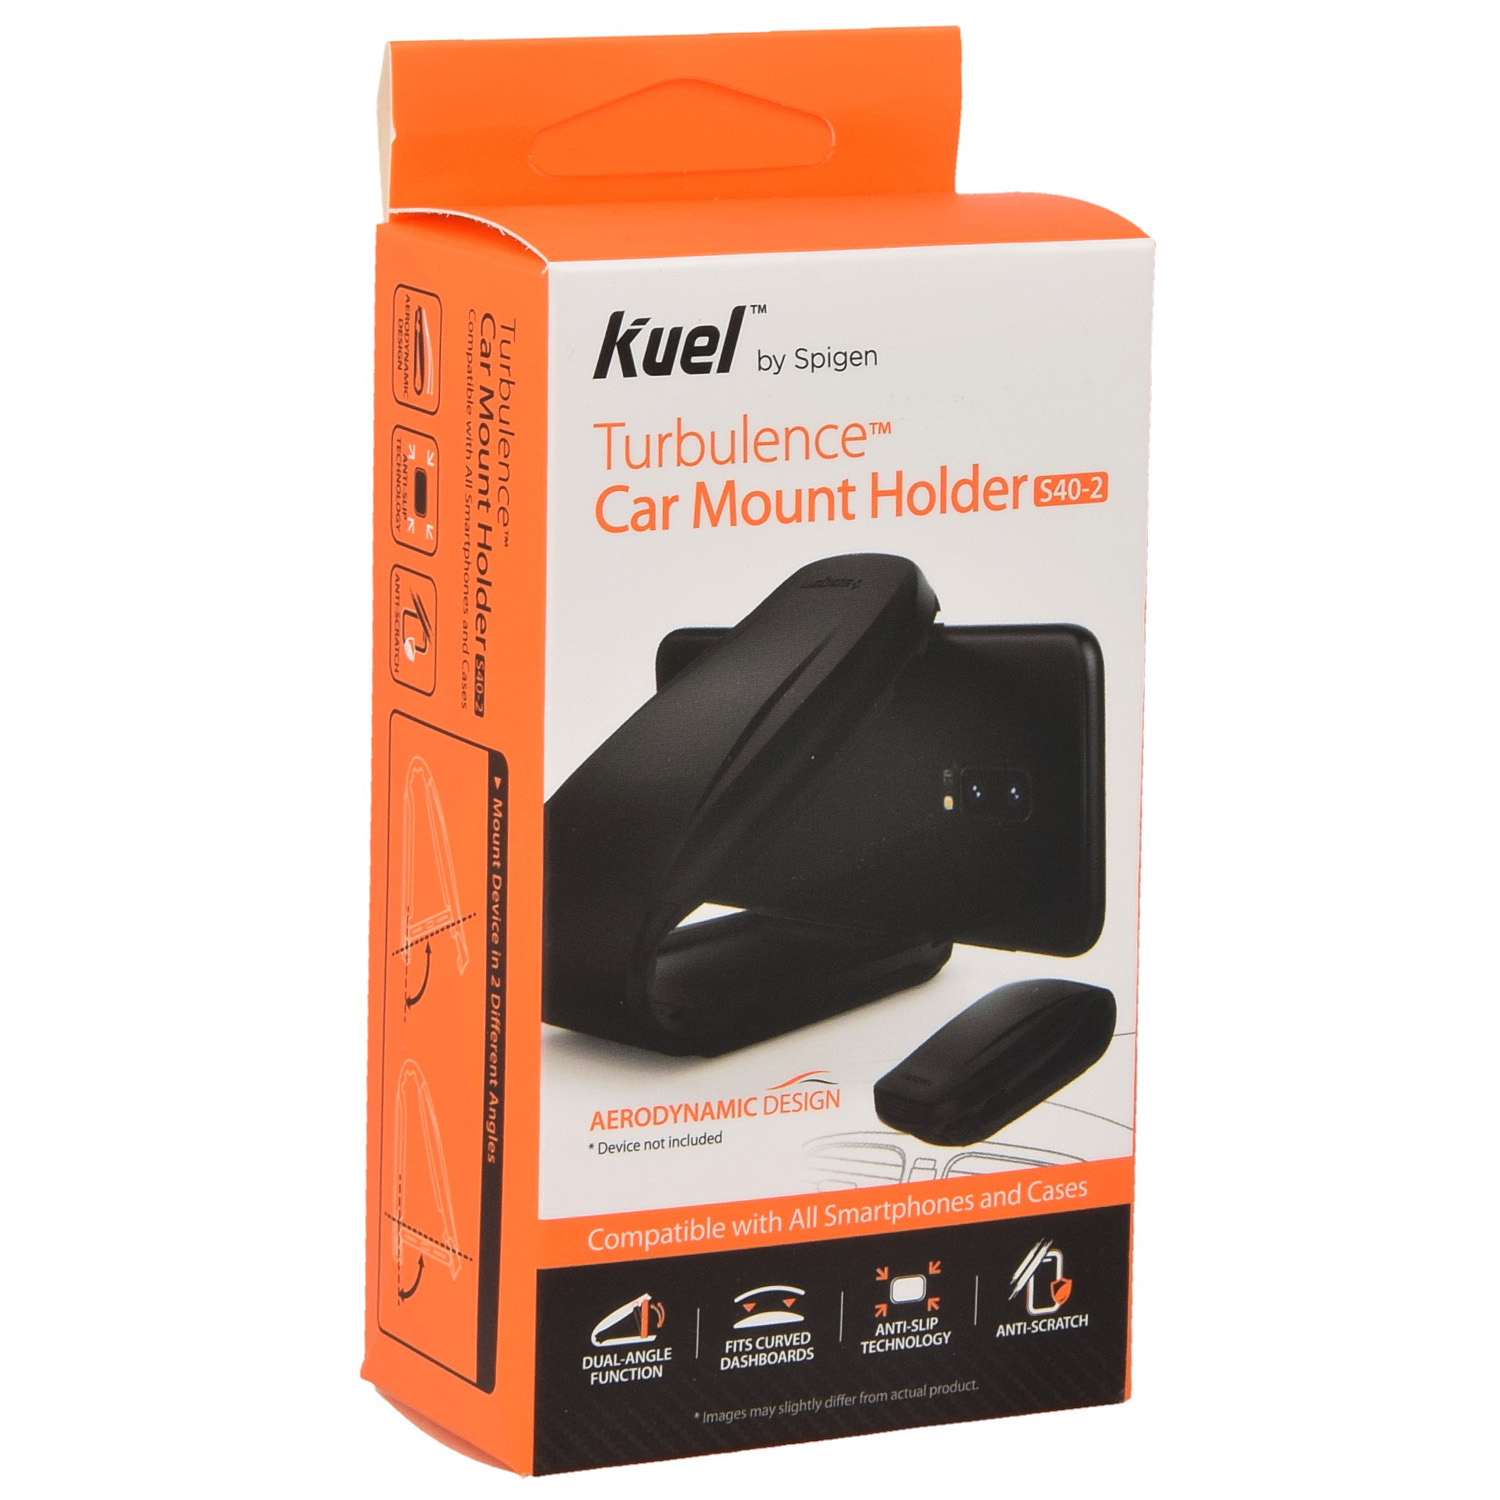 Uchwyt Car Mount Spigen Kuel CD Slot TMS24